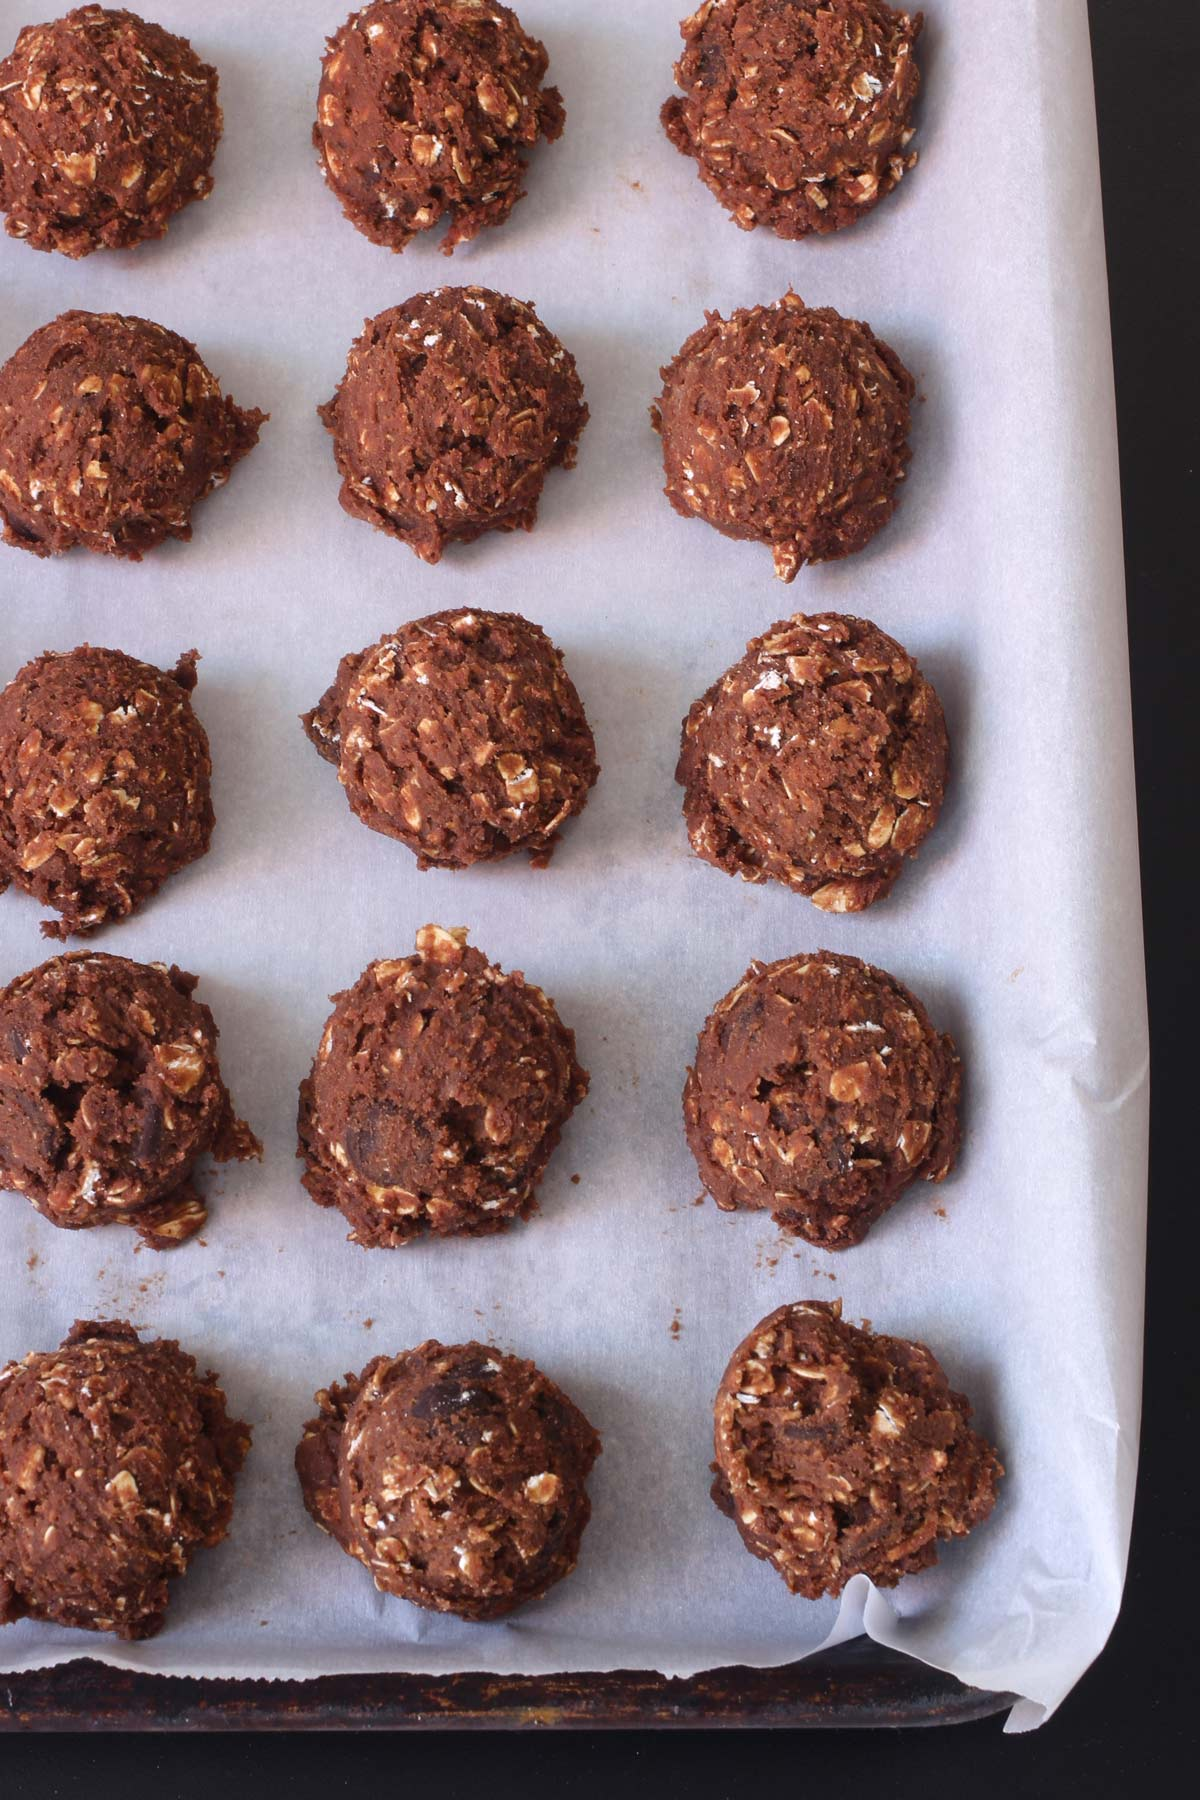 chocolate cookie dough balls on a parchment-lined tray.